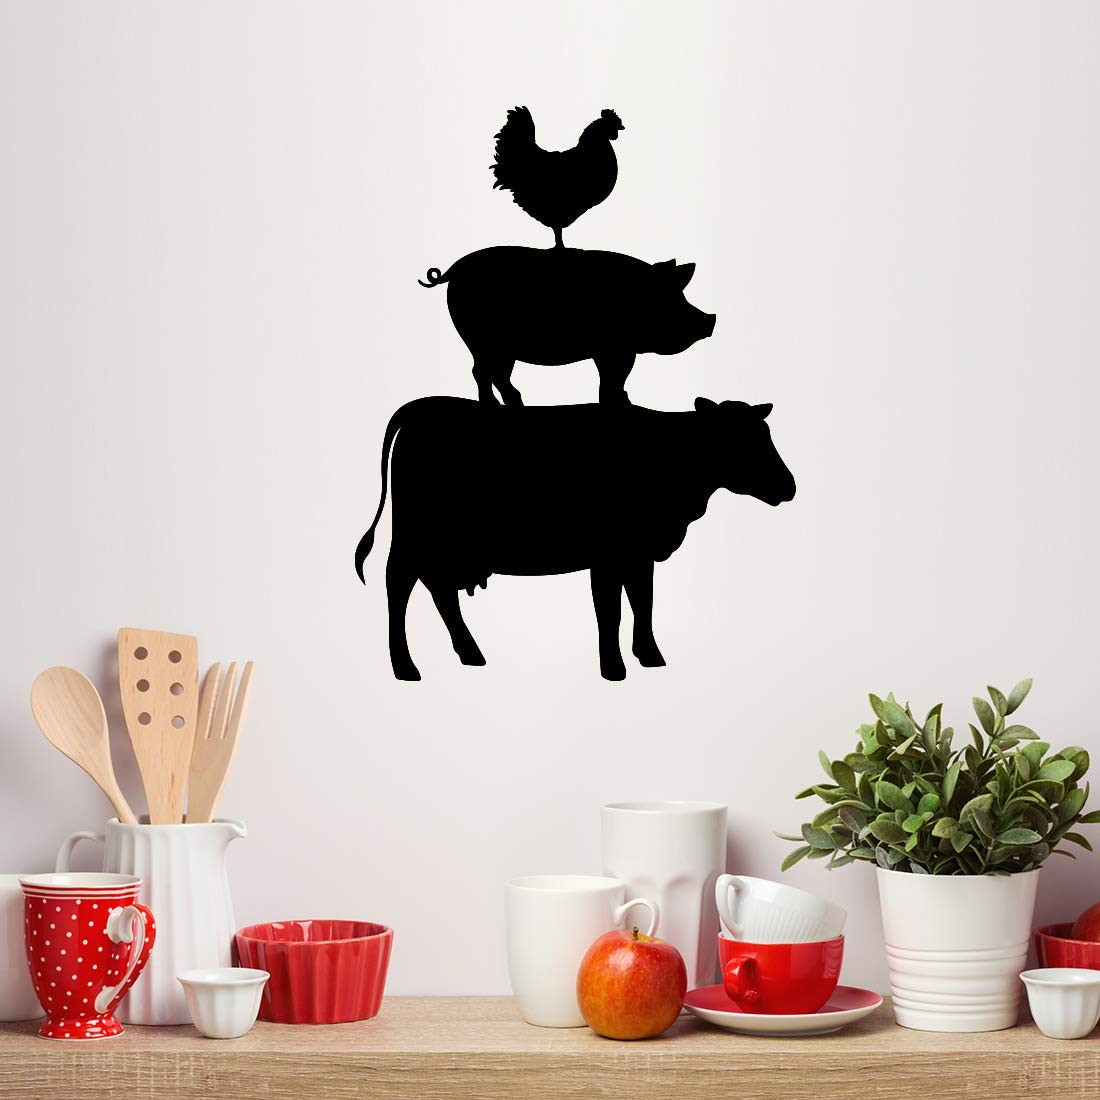 King Size Bed With Storage, Amazon Com Cow Pig Chicken Decal Rustic Farmhouse Kitchen Decor Handmade